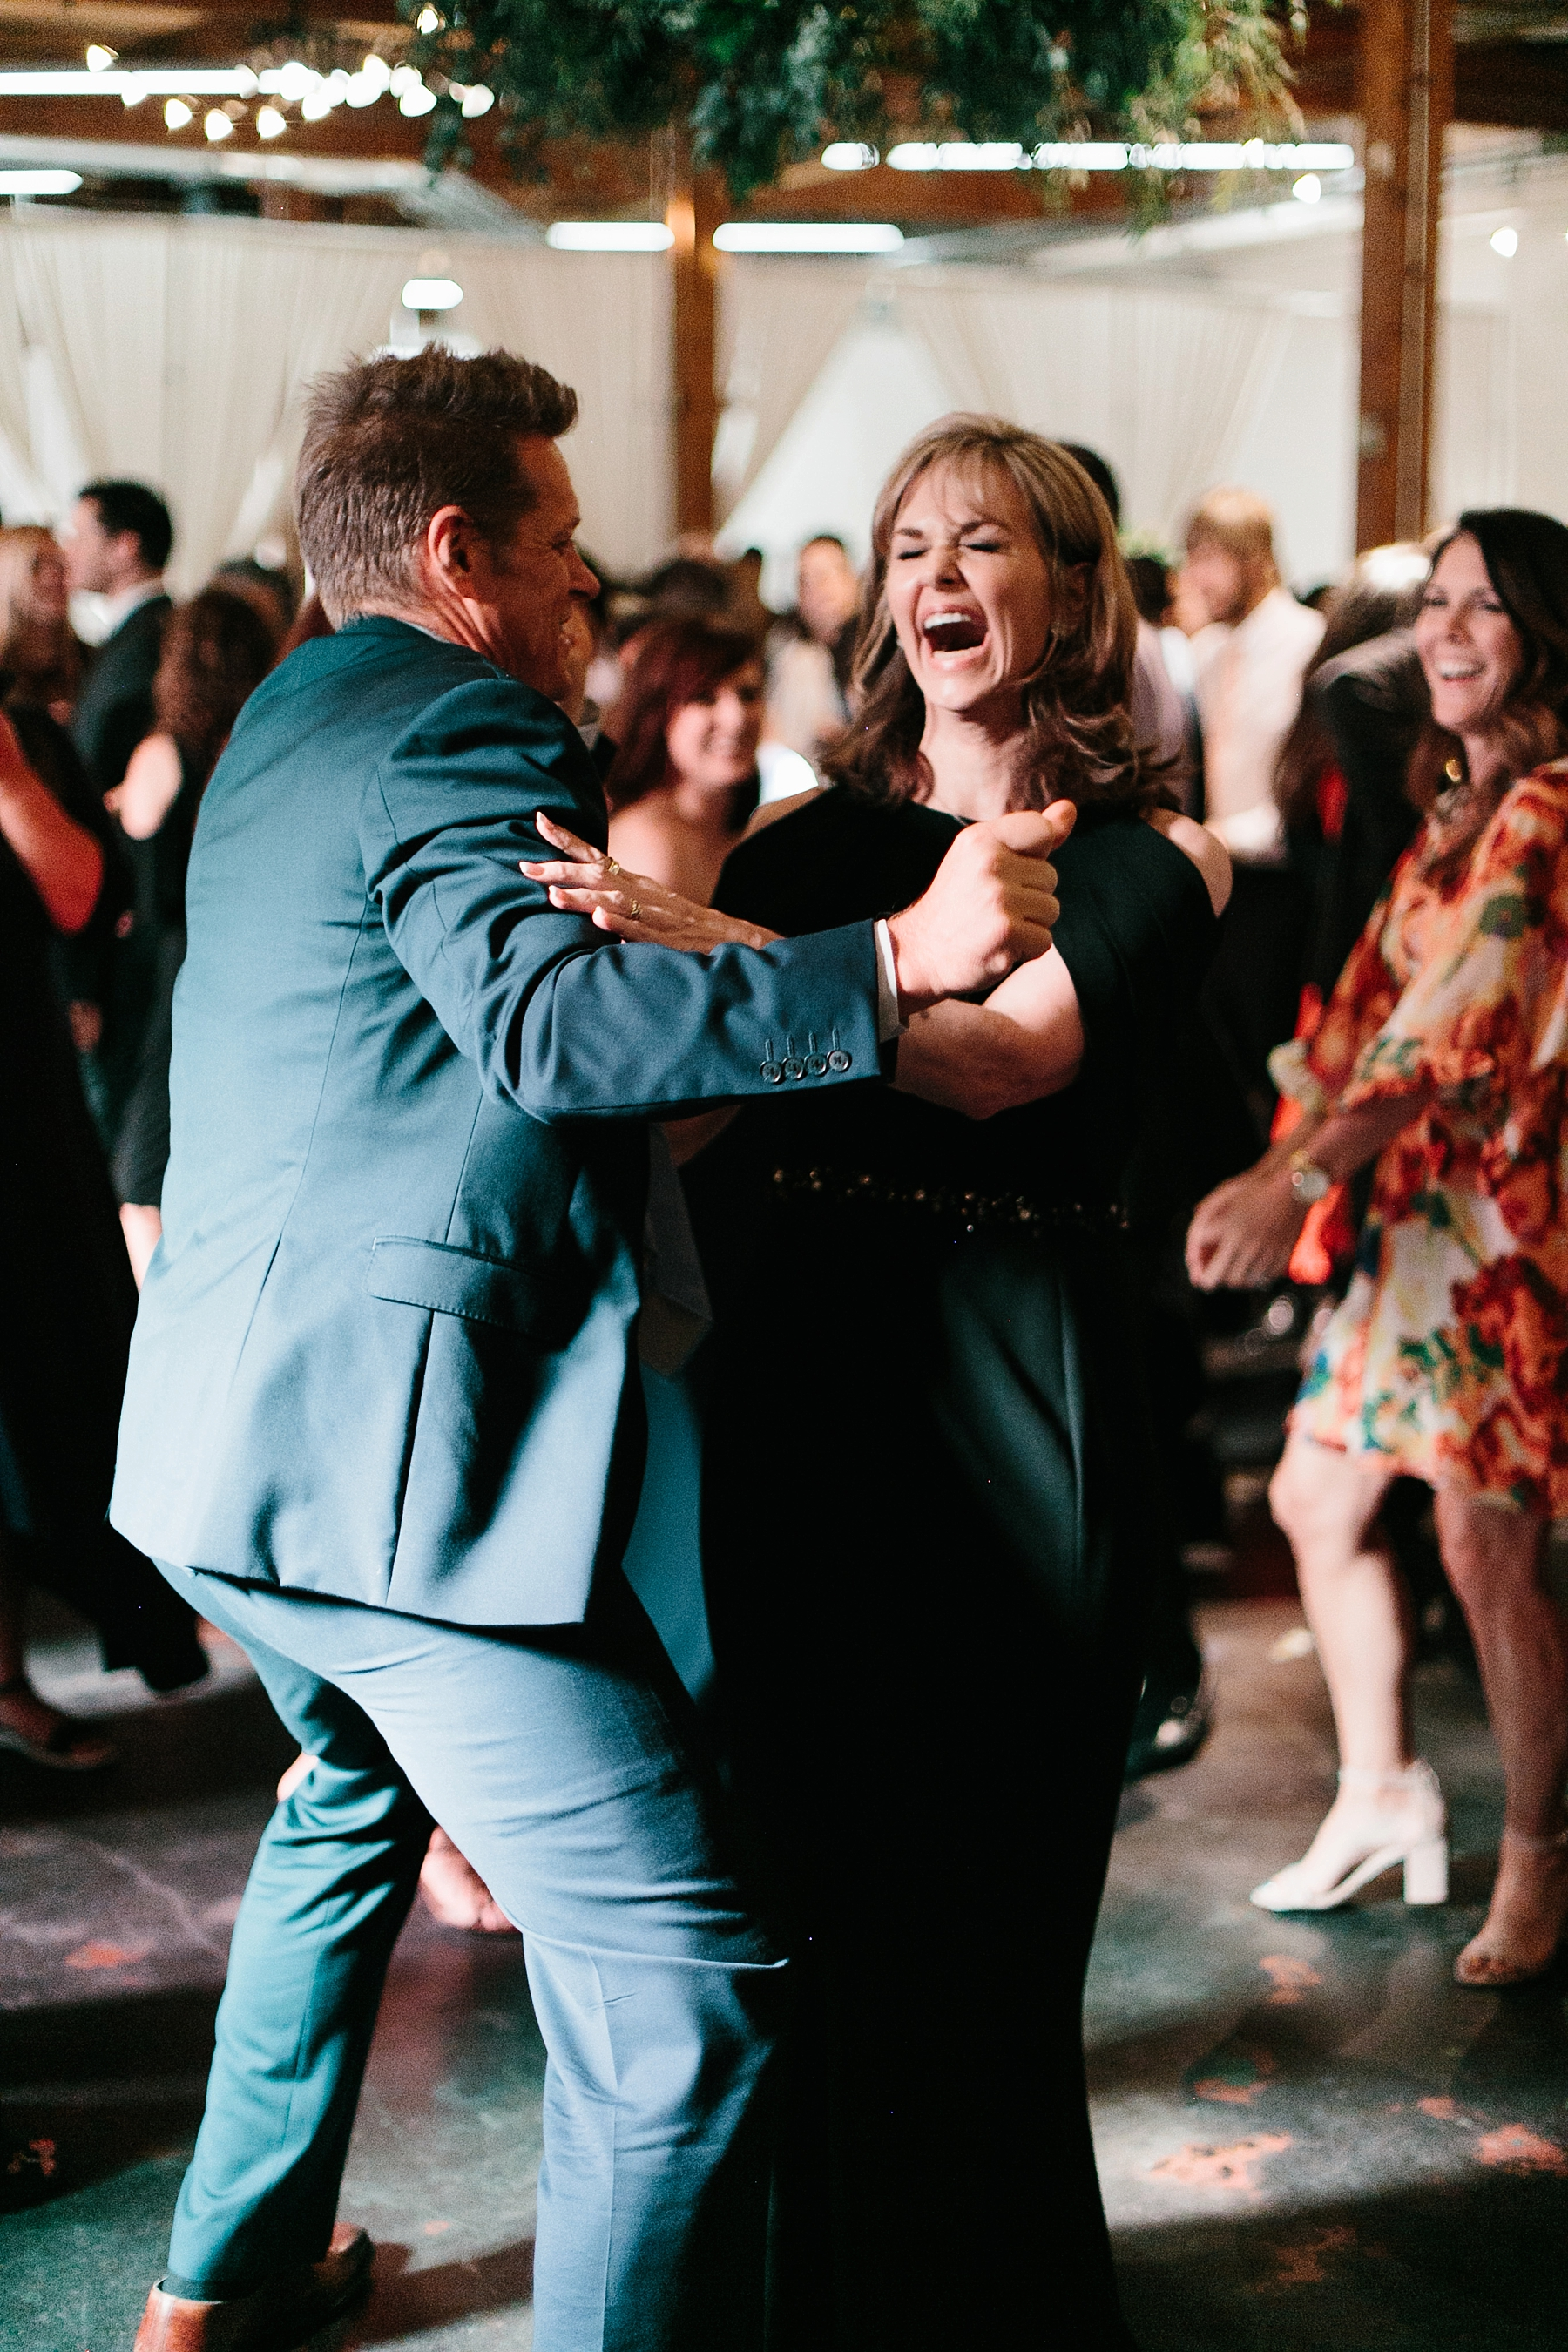 Emily + Caleb _ an elegant, intentional, industrial style wedding with navy + gold accents at 6500 in Dallas, TX by North Texas Wedding Photographer Rachel Meagan Photography _ 156